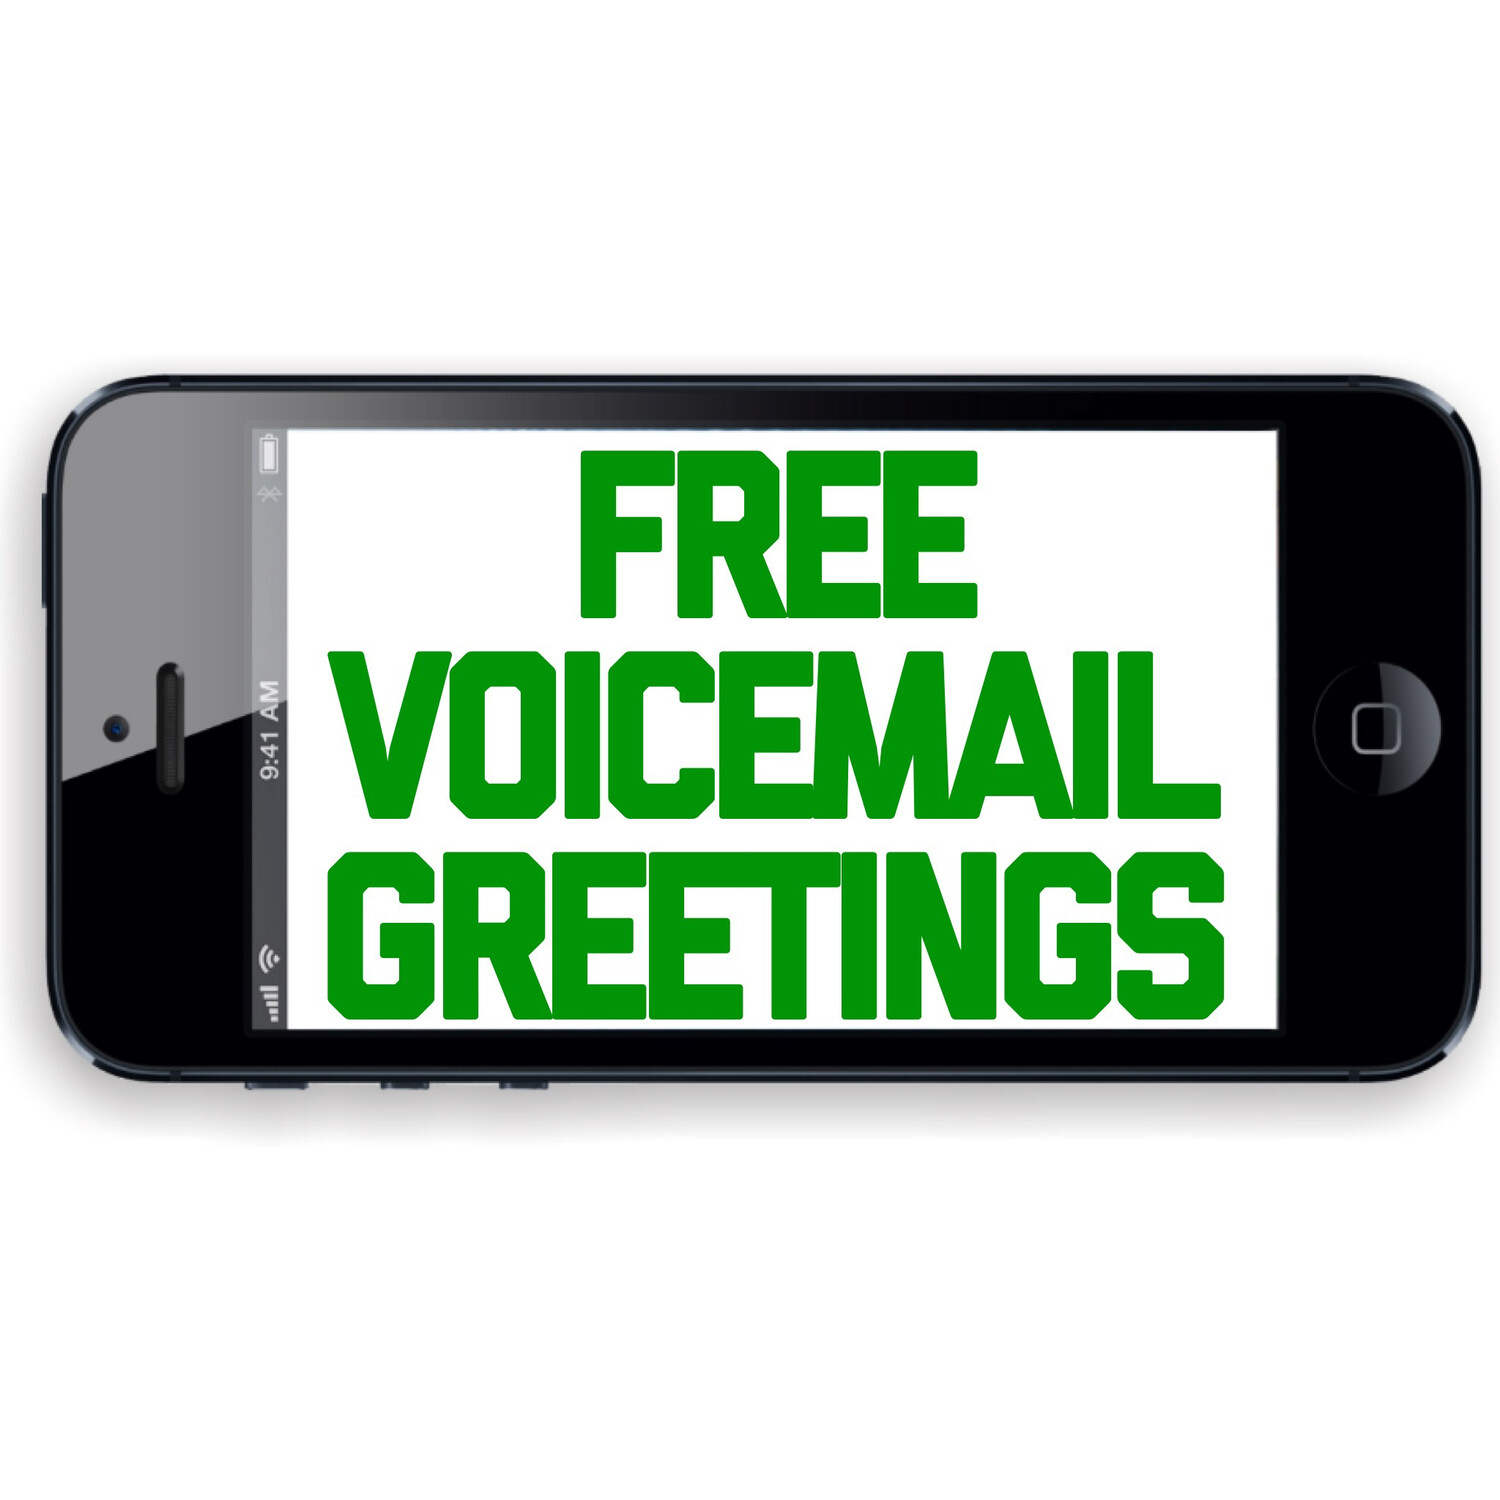 You know what I hate about voicemail ...